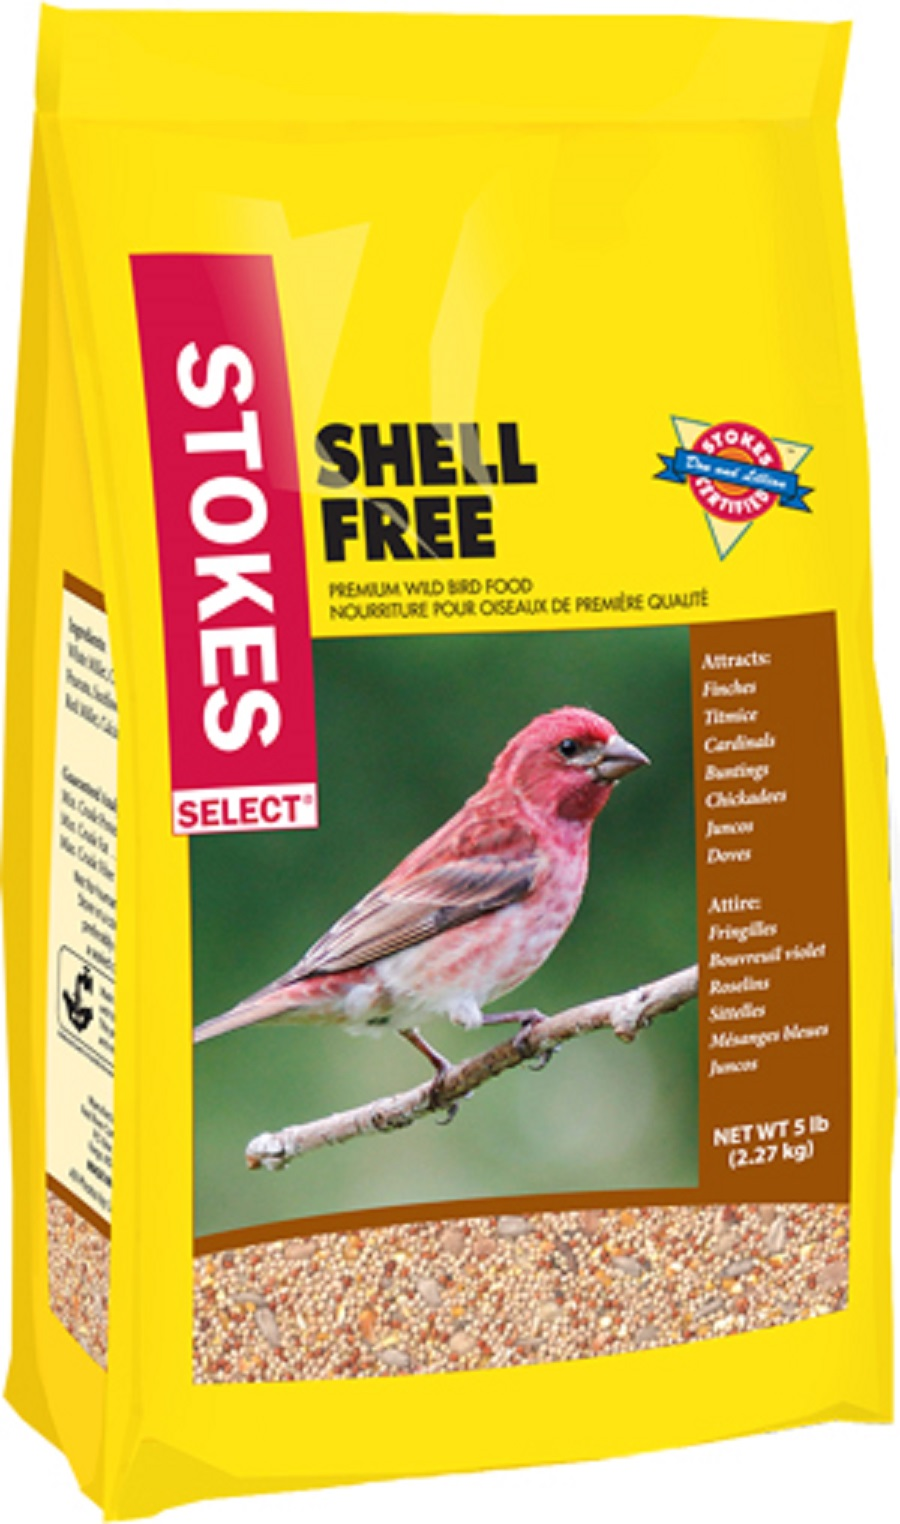 Stokes Select 009267 5 lb. Shell-Free Bird Seed PartNumber: 043W006683591001P KsnValue: 6683591 MfgPartNumber: 009267